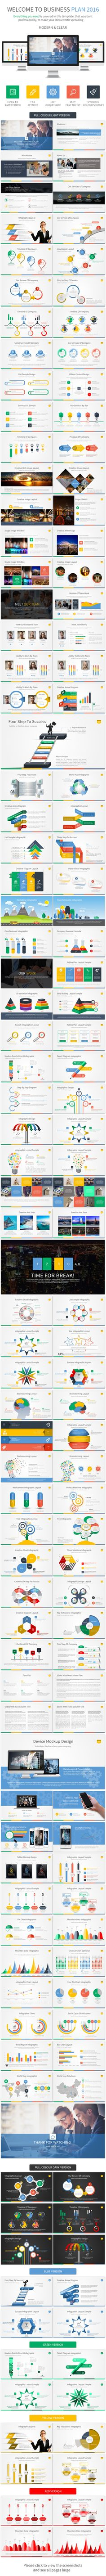 Business Plan 2016 Keynote Template. Download here: http://graphicriver.net/item/business-plan-2016-keynote-template/15675357?ref=ksioks